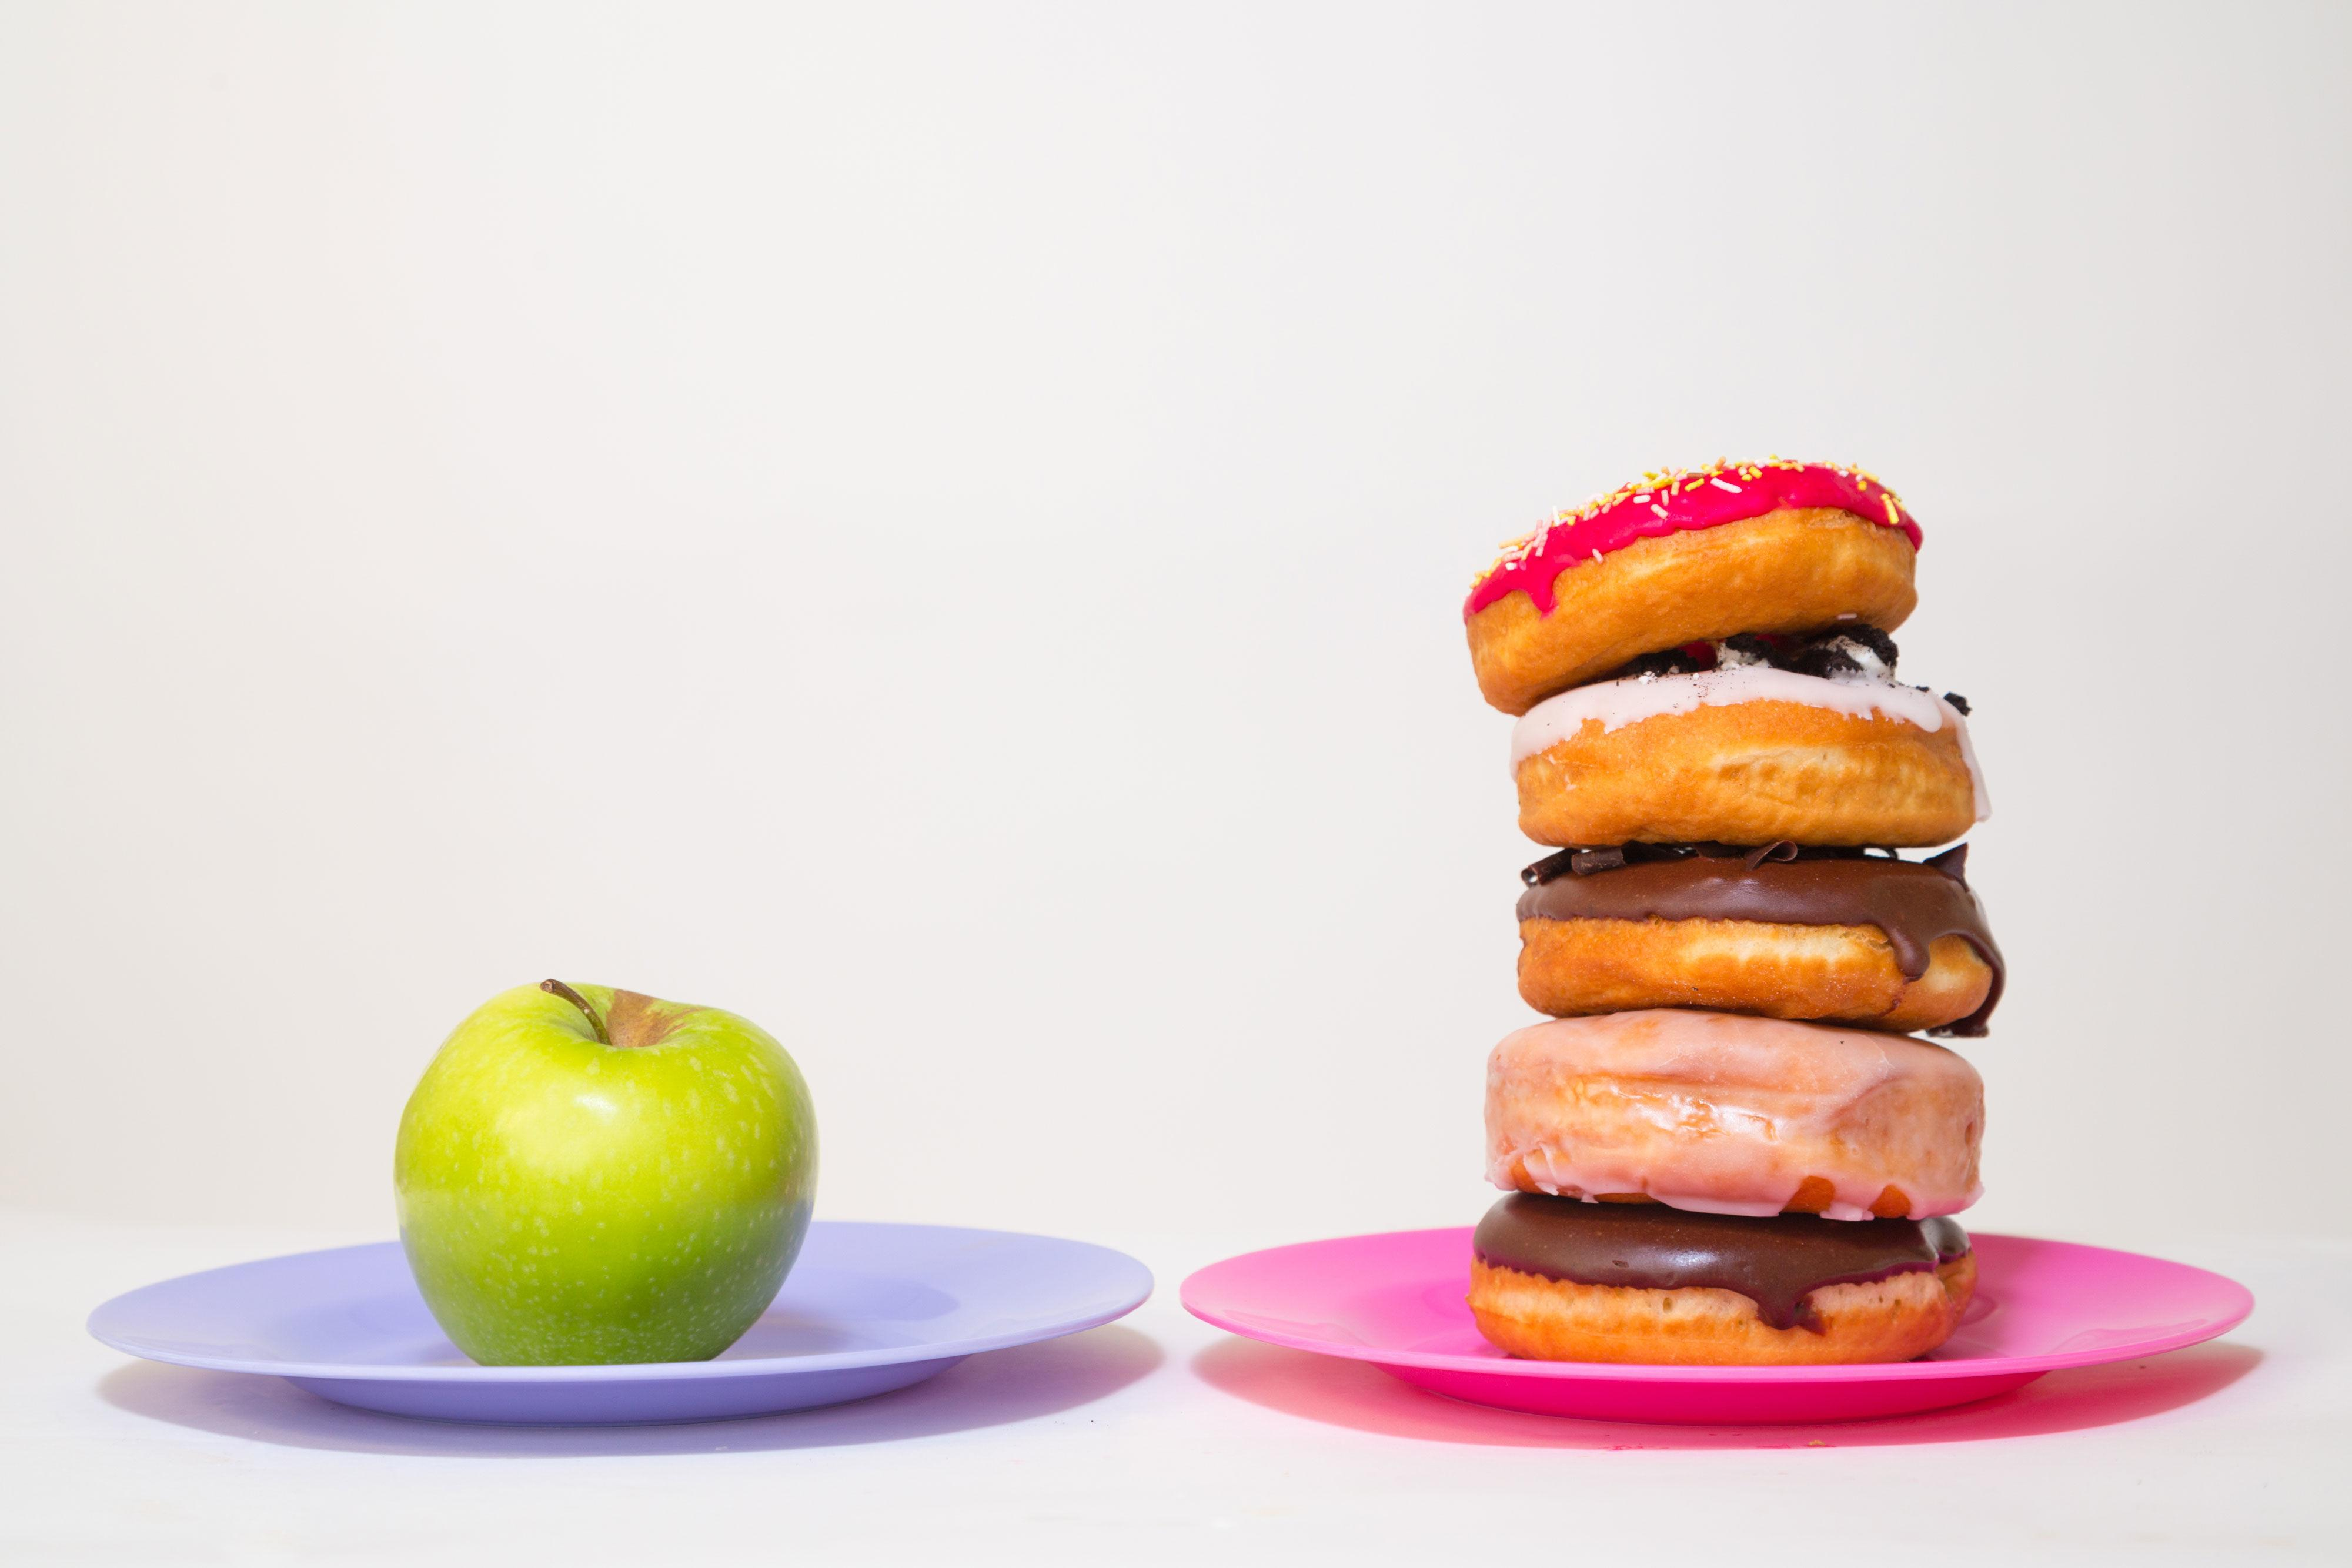 """<p>This means you should <a href=""""http://www.redbookmag.com/body/healthy-eating/g3123/food-cravings/"""" rel=""""nofollow noopener"""" target=""""_blank"""" data-ylk=""""slk:tune into hunger/fullness cues"""" class=""""link rapid-noclick-resp"""">tune into hunger/fullness cues</a> to determine whether you <i>reallllly</i> want that second chocolate chip cookie or not, and not just rely on what other people around you are eating or <a href=""""http://www.redbookmag.com/body/health-fitness/news/a46001/nickelodeon-bad-kids-health-new-study/"""" rel=""""nofollow noopener"""" target=""""_blank"""" data-ylk=""""slk:seductive marketing"""" class=""""link rapid-noclick-resp"""">seductive marketing</a>. """"Are you really hungry? Ask yourself whether a celery stick or apple sounds delicious — if not, you're probably not hungry,"""" says <a href=""""http://plantbaseddietitian.com/"""" rel=""""nofollow noopener"""" target=""""_blank"""" data-ylk=""""slk:Julieanna Hever"""" class=""""link rapid-noclick-resp"""">Julieanna Hever</a>, R.D., author of <i><a href=""""http://www.amazon.com/The-Vegiterranean-Diet-Mediterranean-Plan/dp/0738217891?tag=syndication-20&&ascsubtag=redbook.gallery.3565"""" rel=""""nofollow noopener"""" target=""""_blank"""" data-ylk=""""slk:The Vegiterranean Diet"""" class=""""link rapid-noclick-resp"""">The Vegiterranean Diet</a></i>.</p>"""